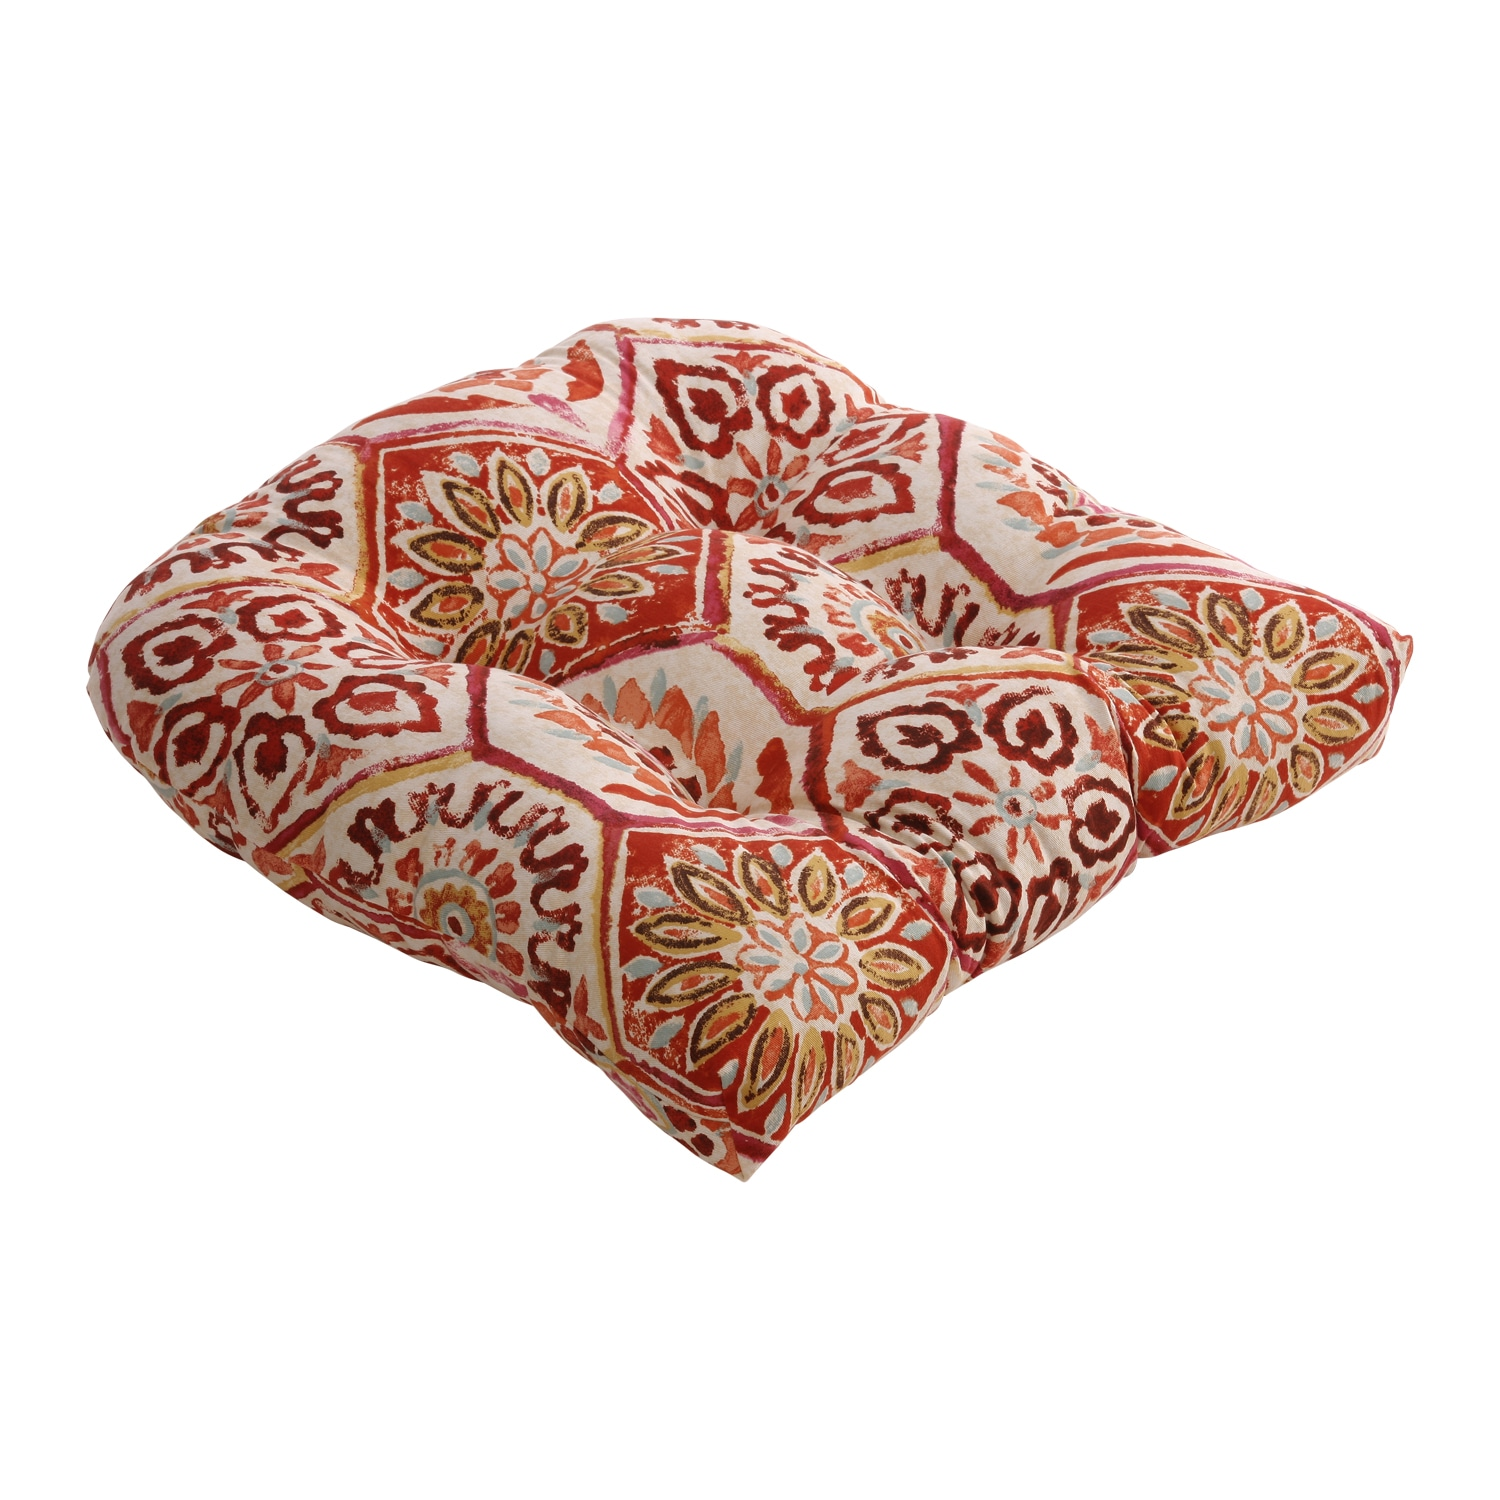 Cushions chair pads and more - Summer Breeze Chair Cushion In Crimson